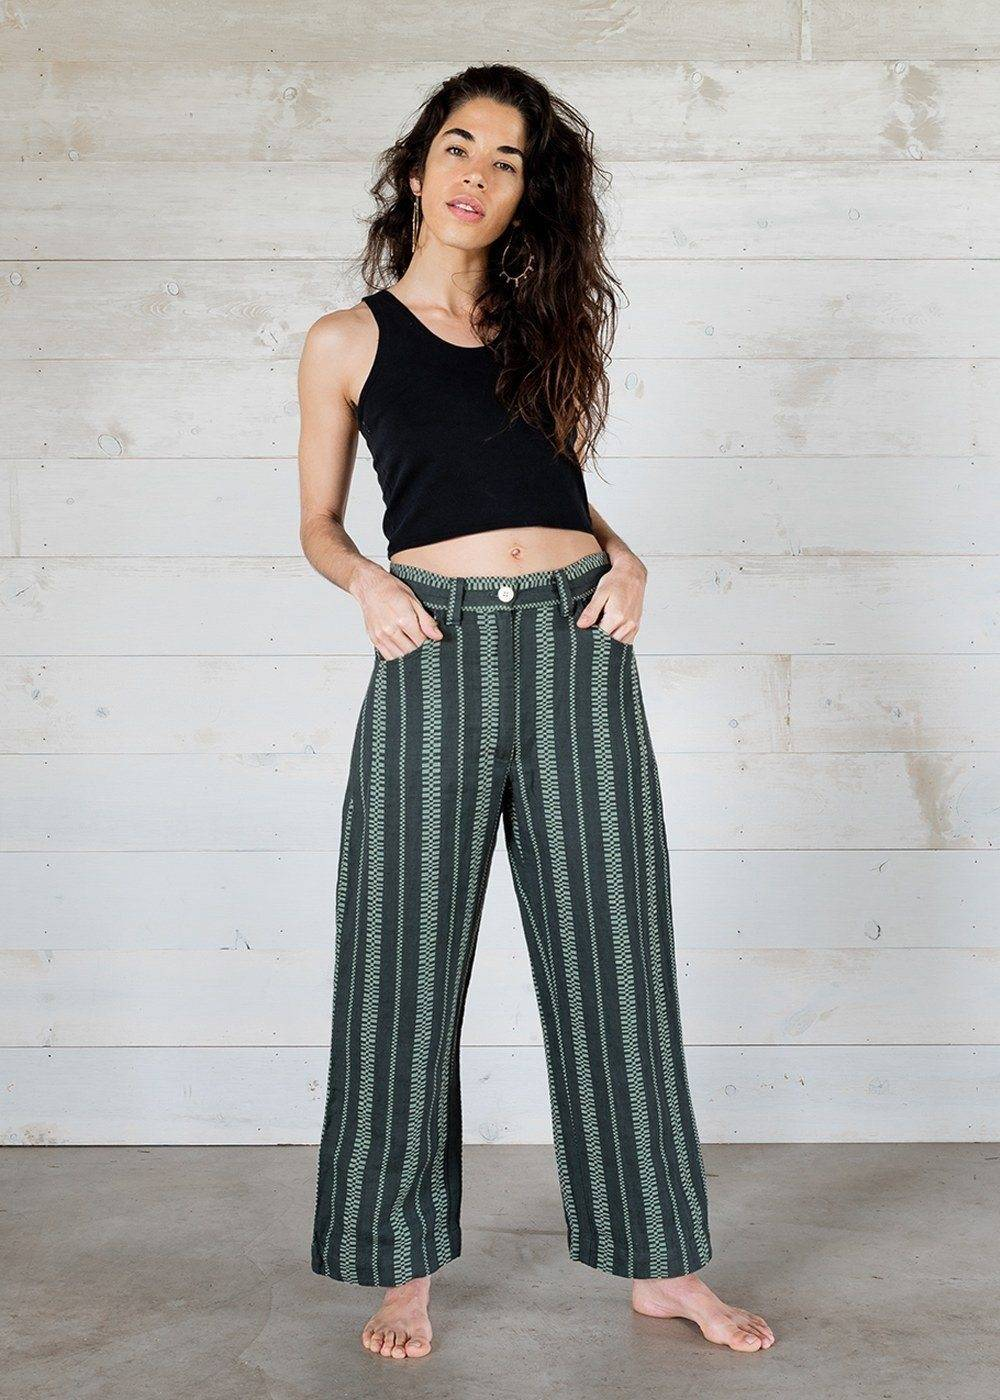 petite hourglass figure stripe pants